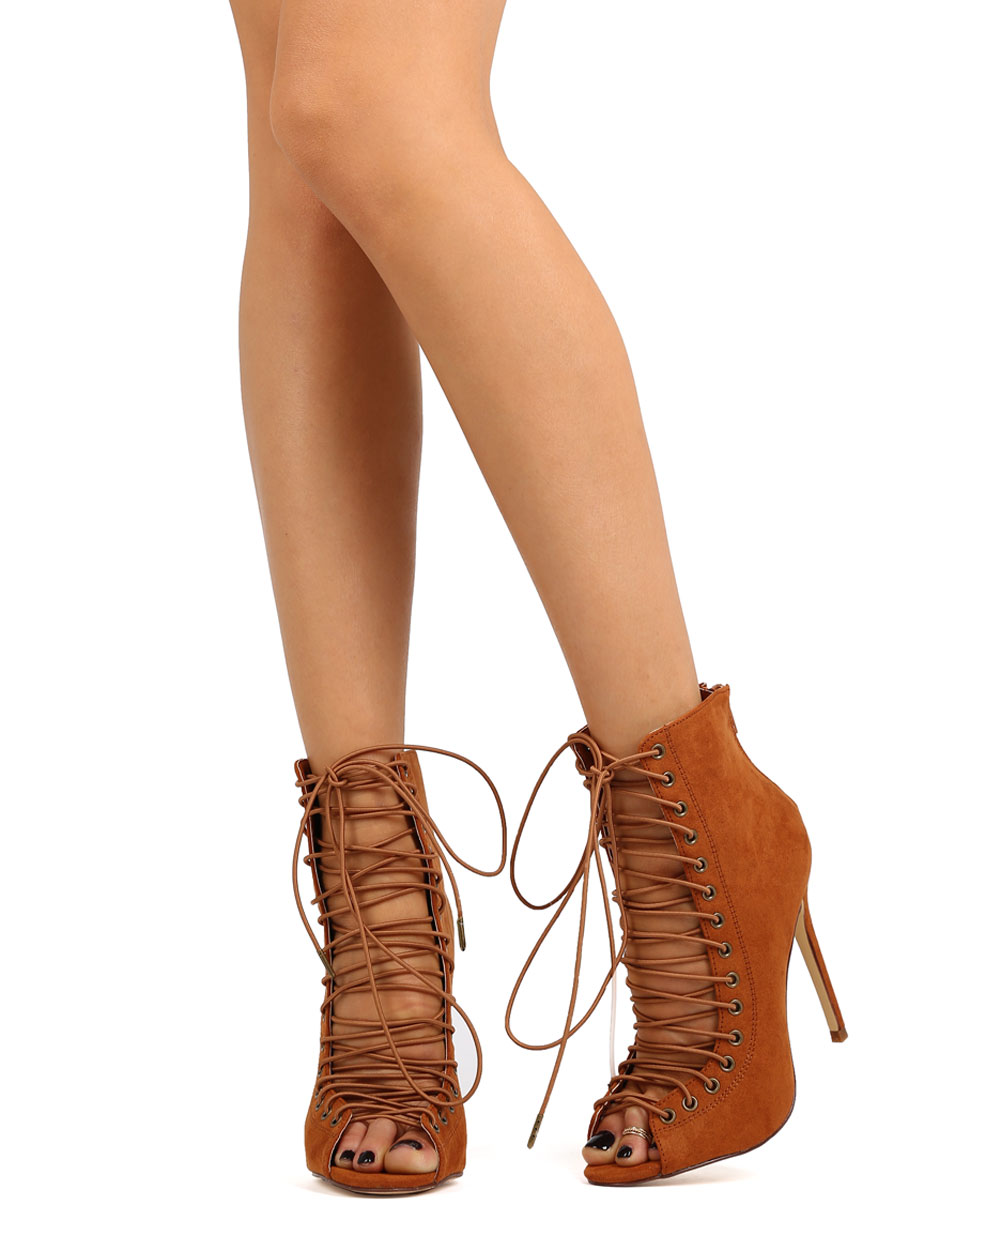 corset flats 7.5 brown reptile shoes lace up flats 8